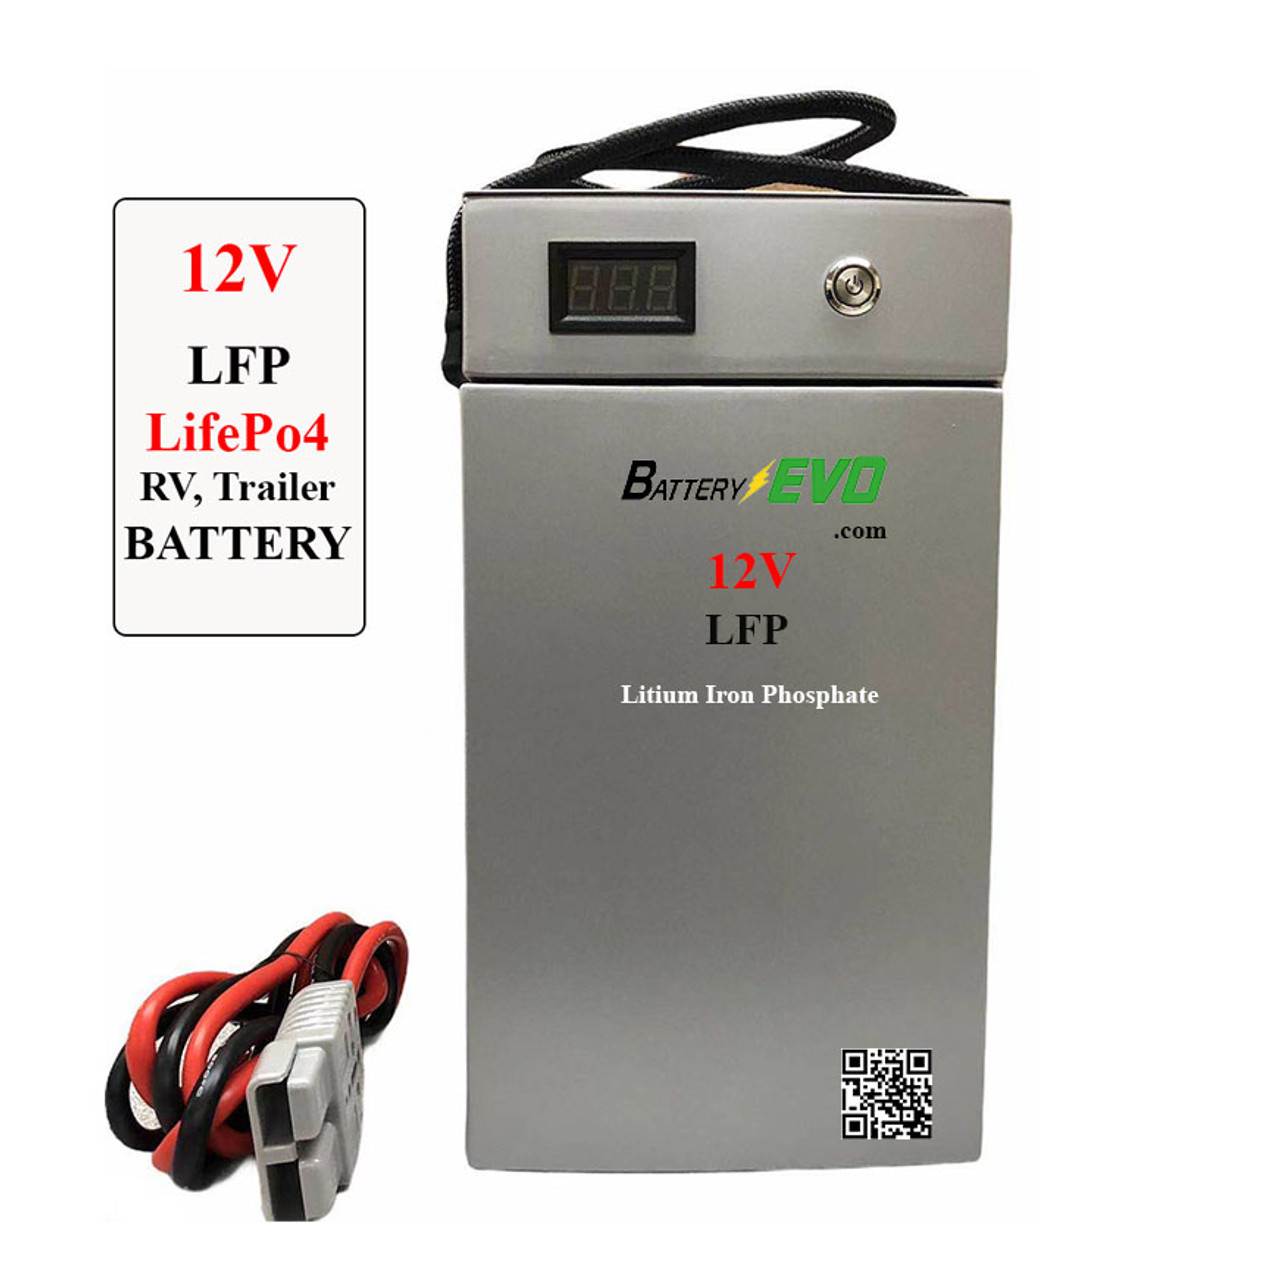 12V Battery Lithium 120Ah 1.5 kWh LiFePO4 LFP Solar Trailer Golf Cart Cabin Scooter Boat